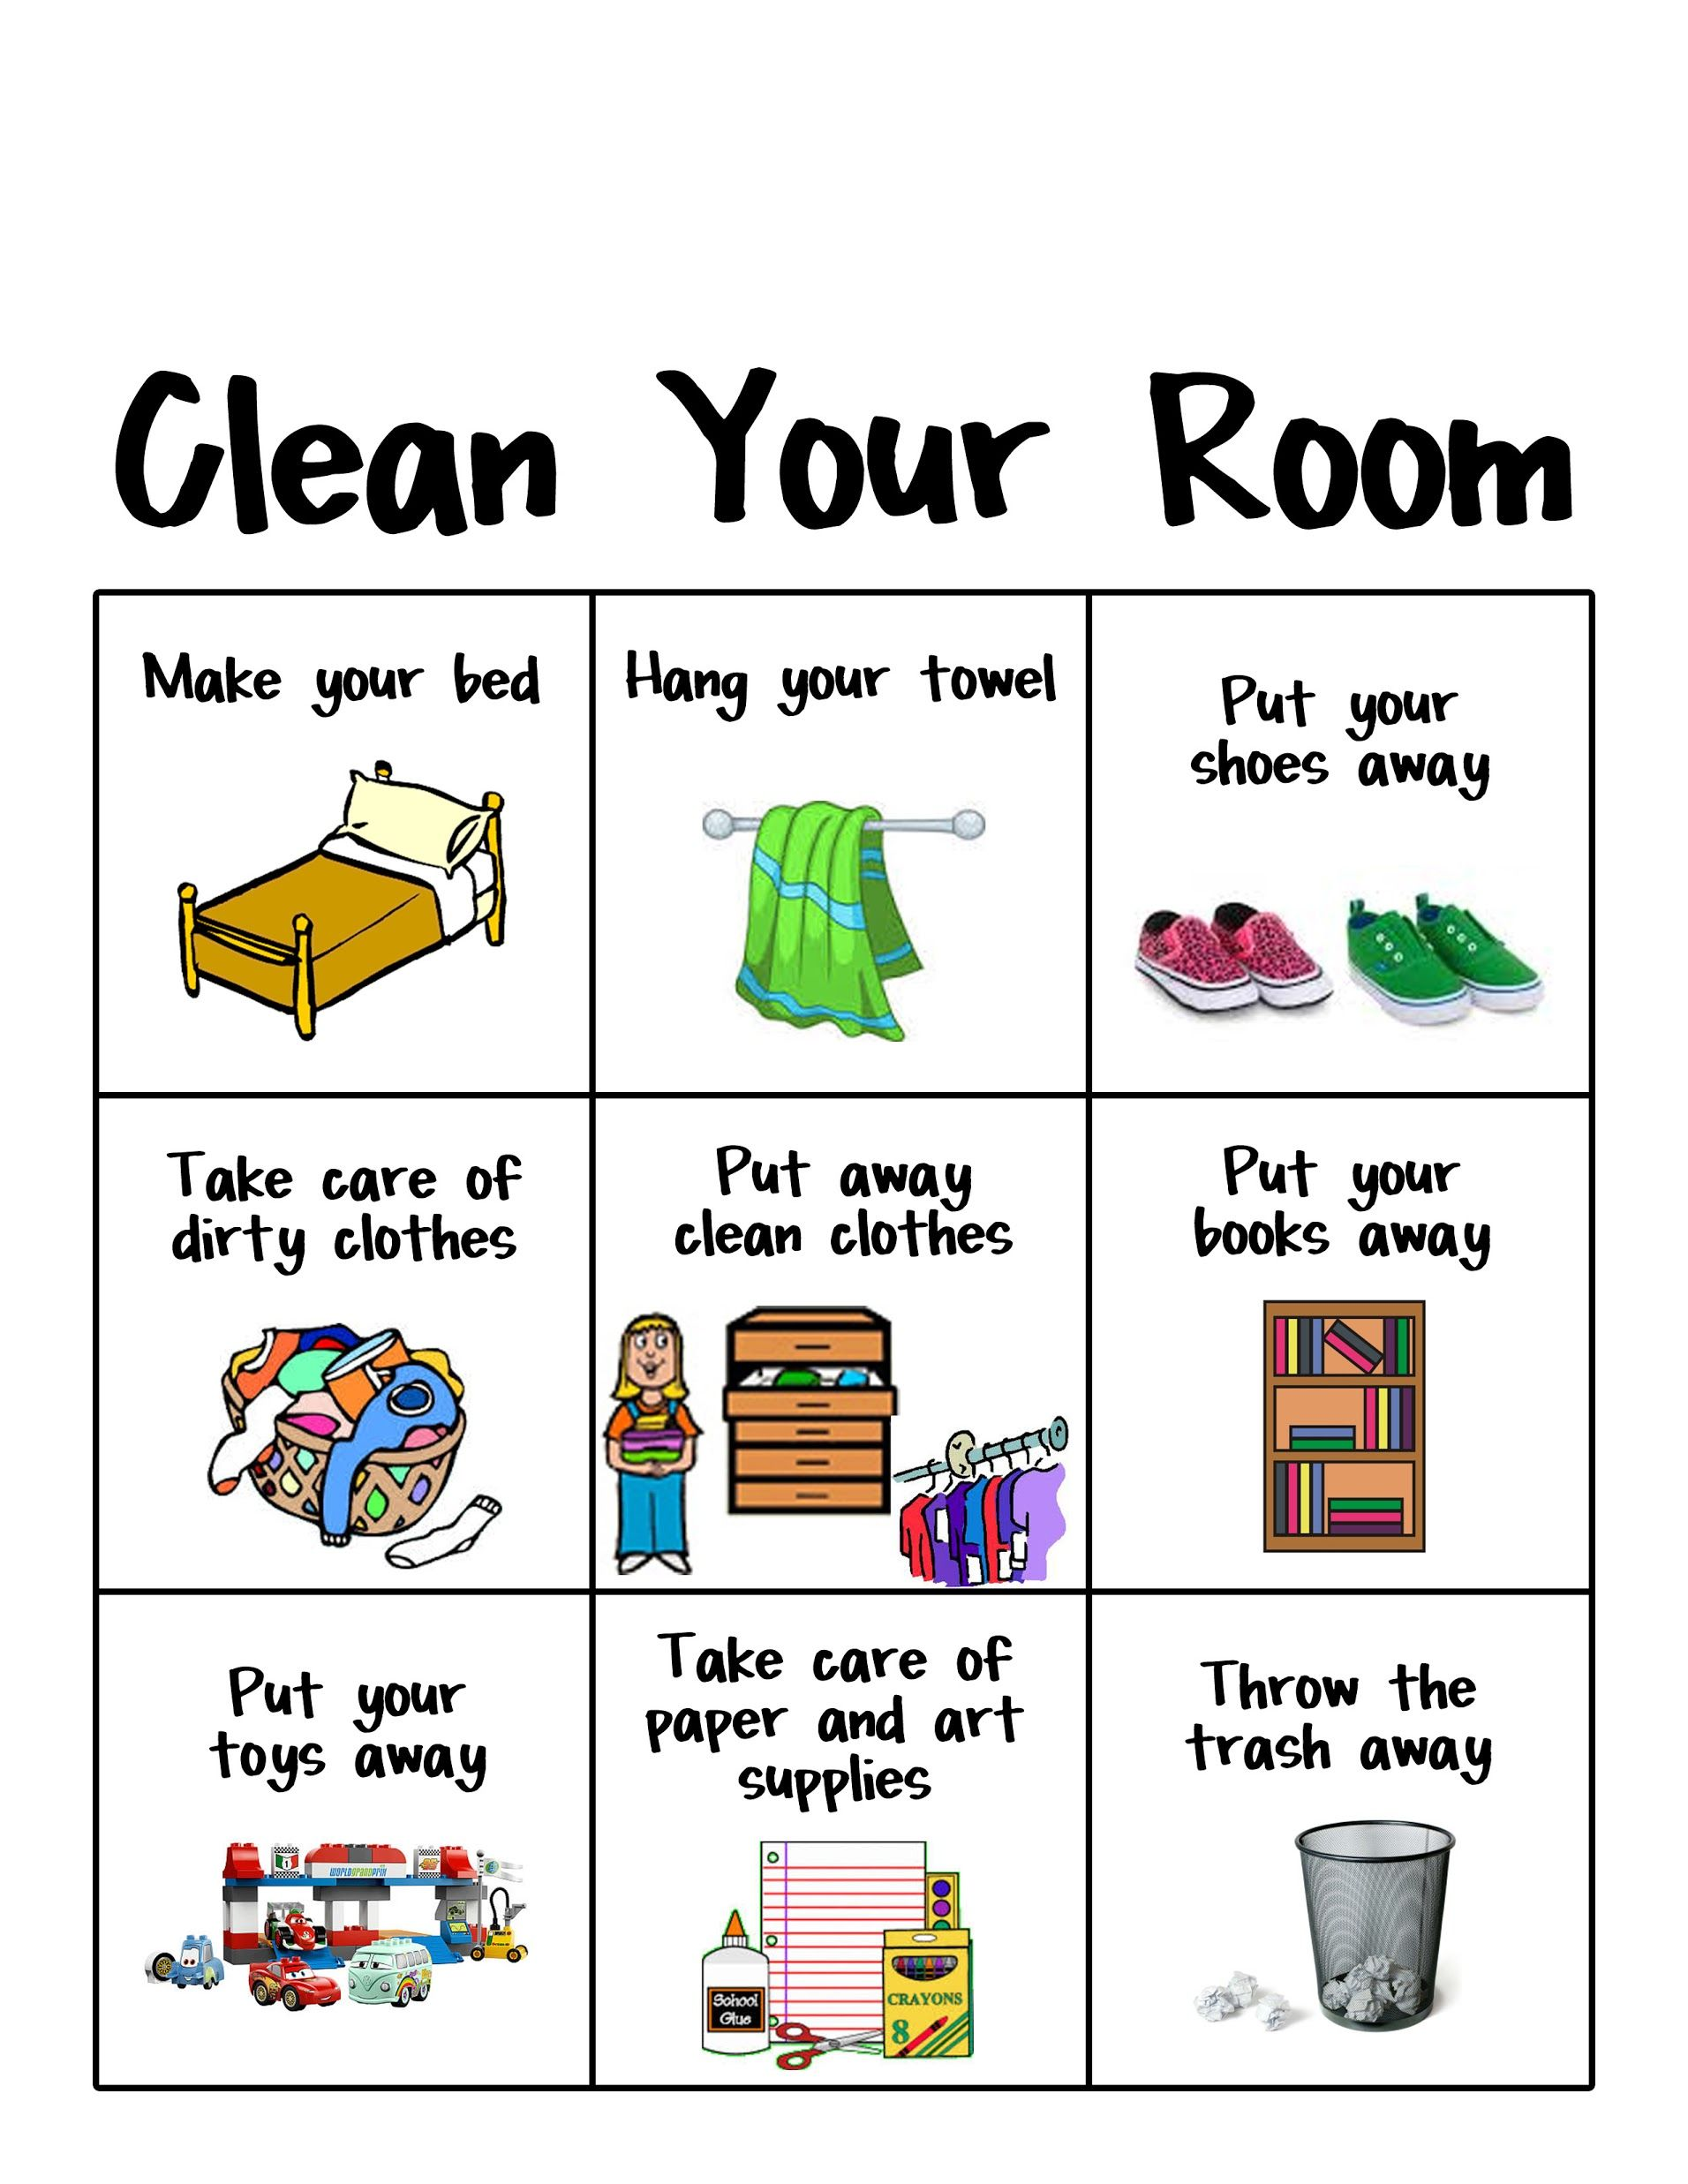 Displaying clean your room chartg also girl ideas pinterest rh sk